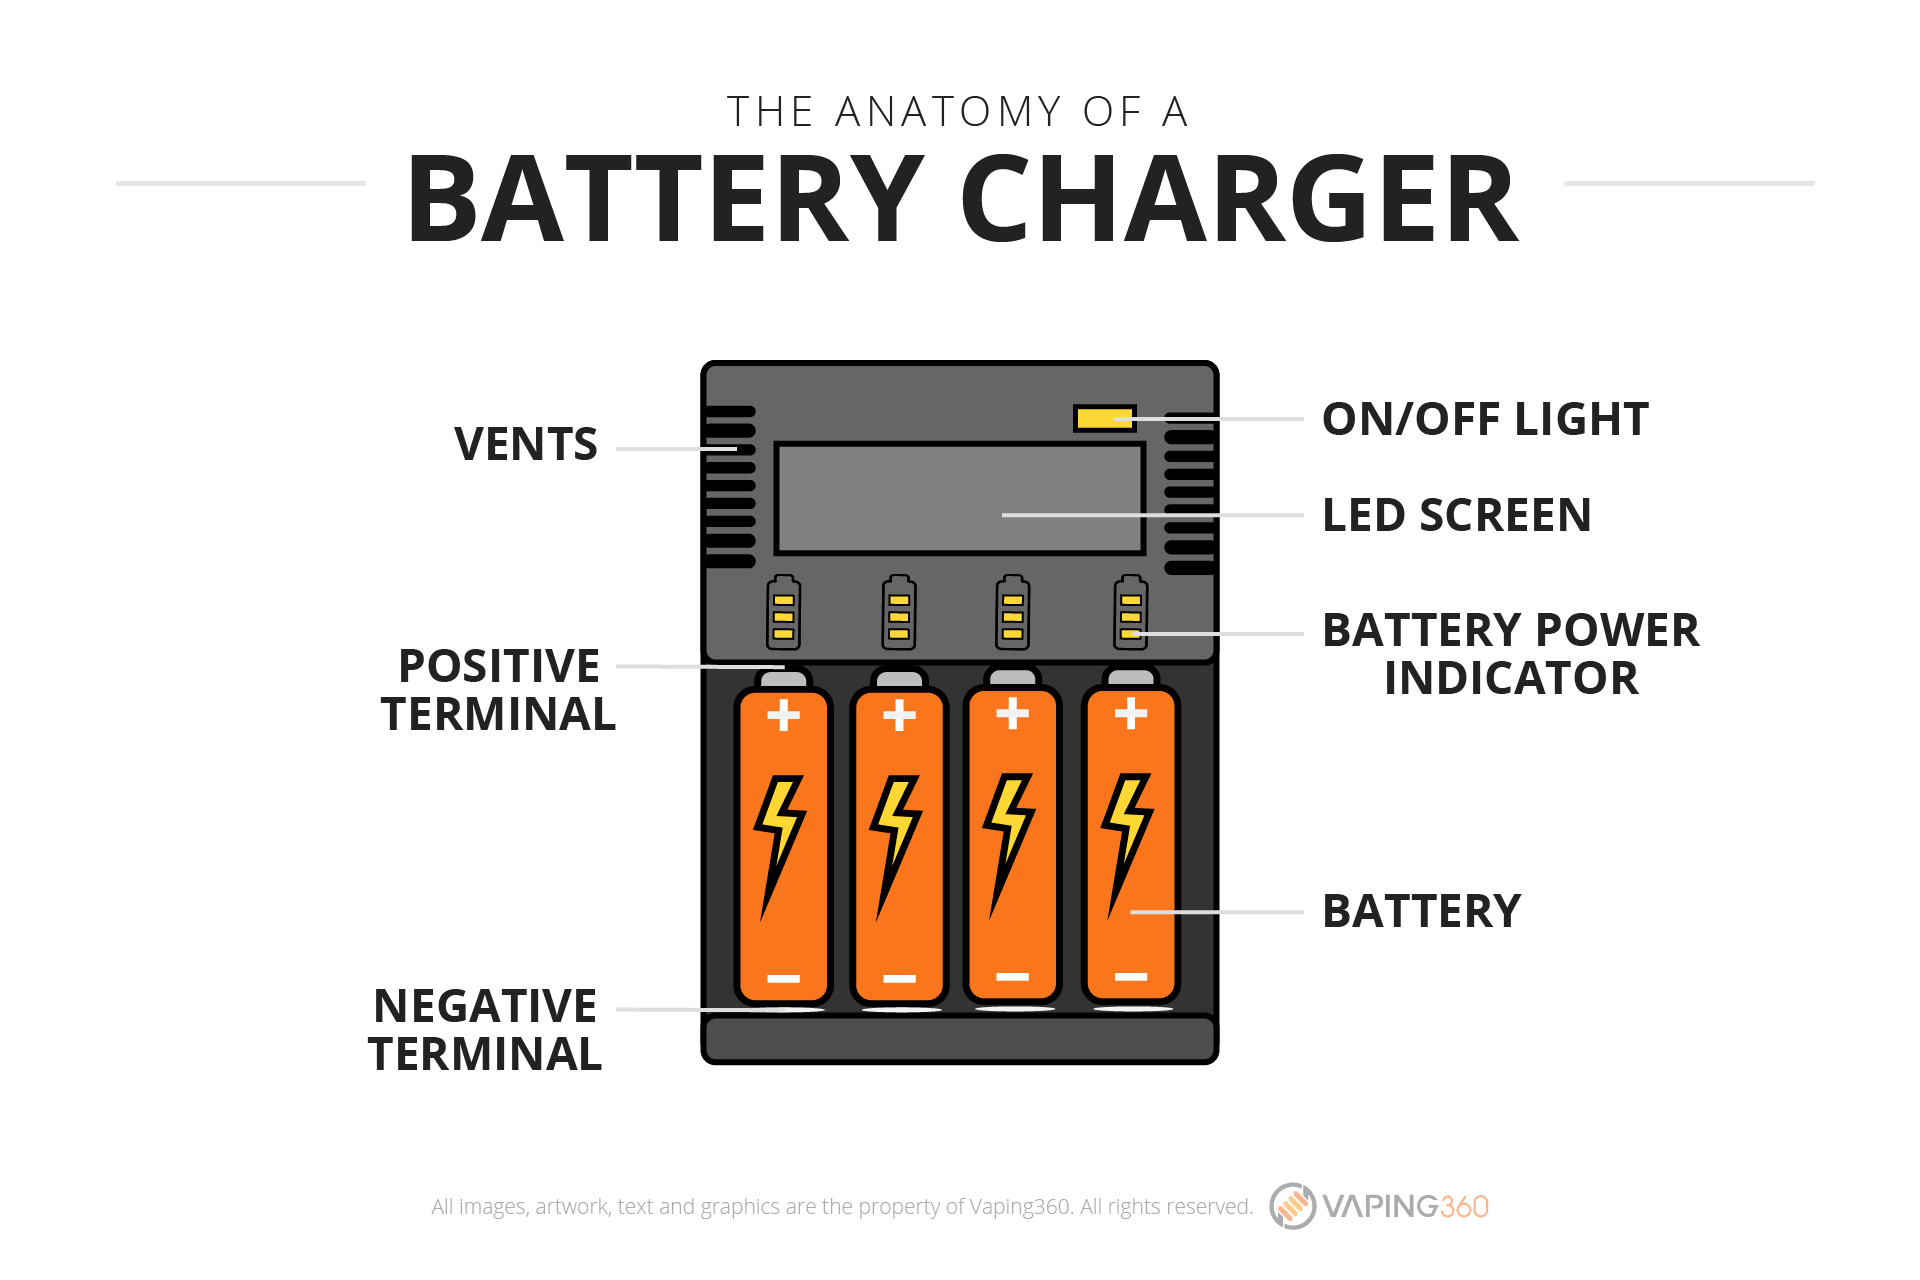 The anatomy of a battery charger